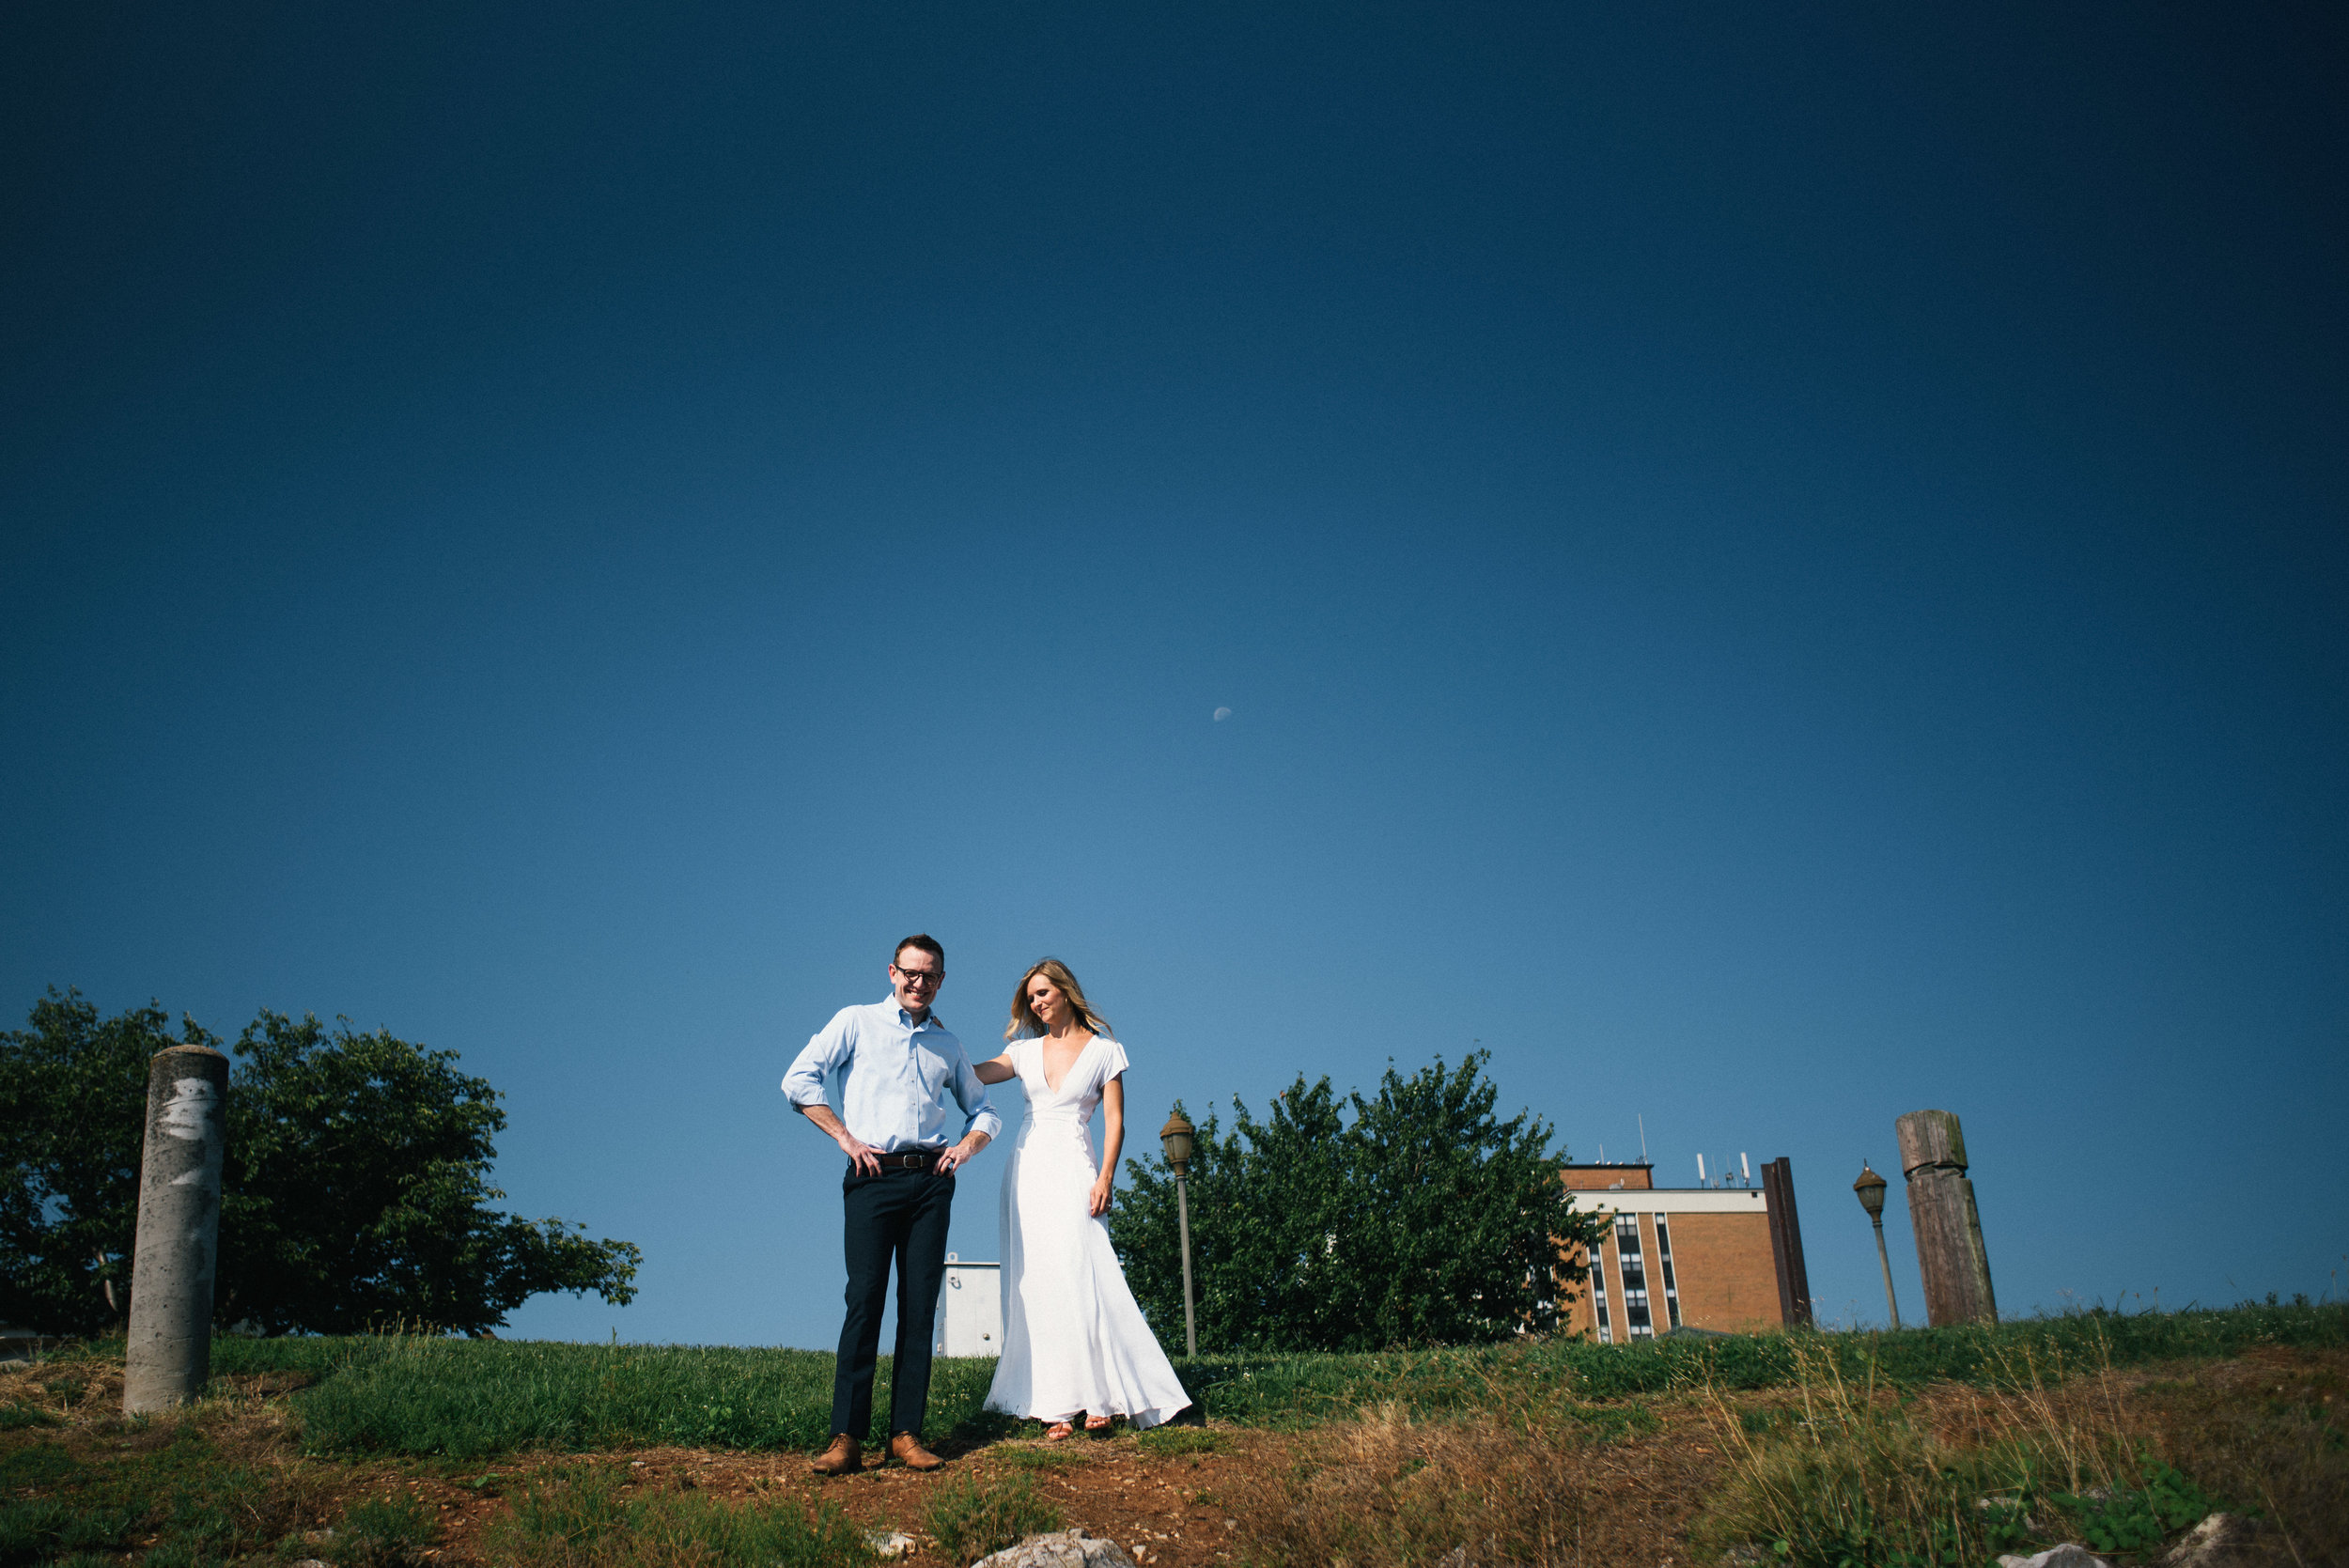 taryn-and-jackson-engagement-save-the-date (76 of 219).jpg